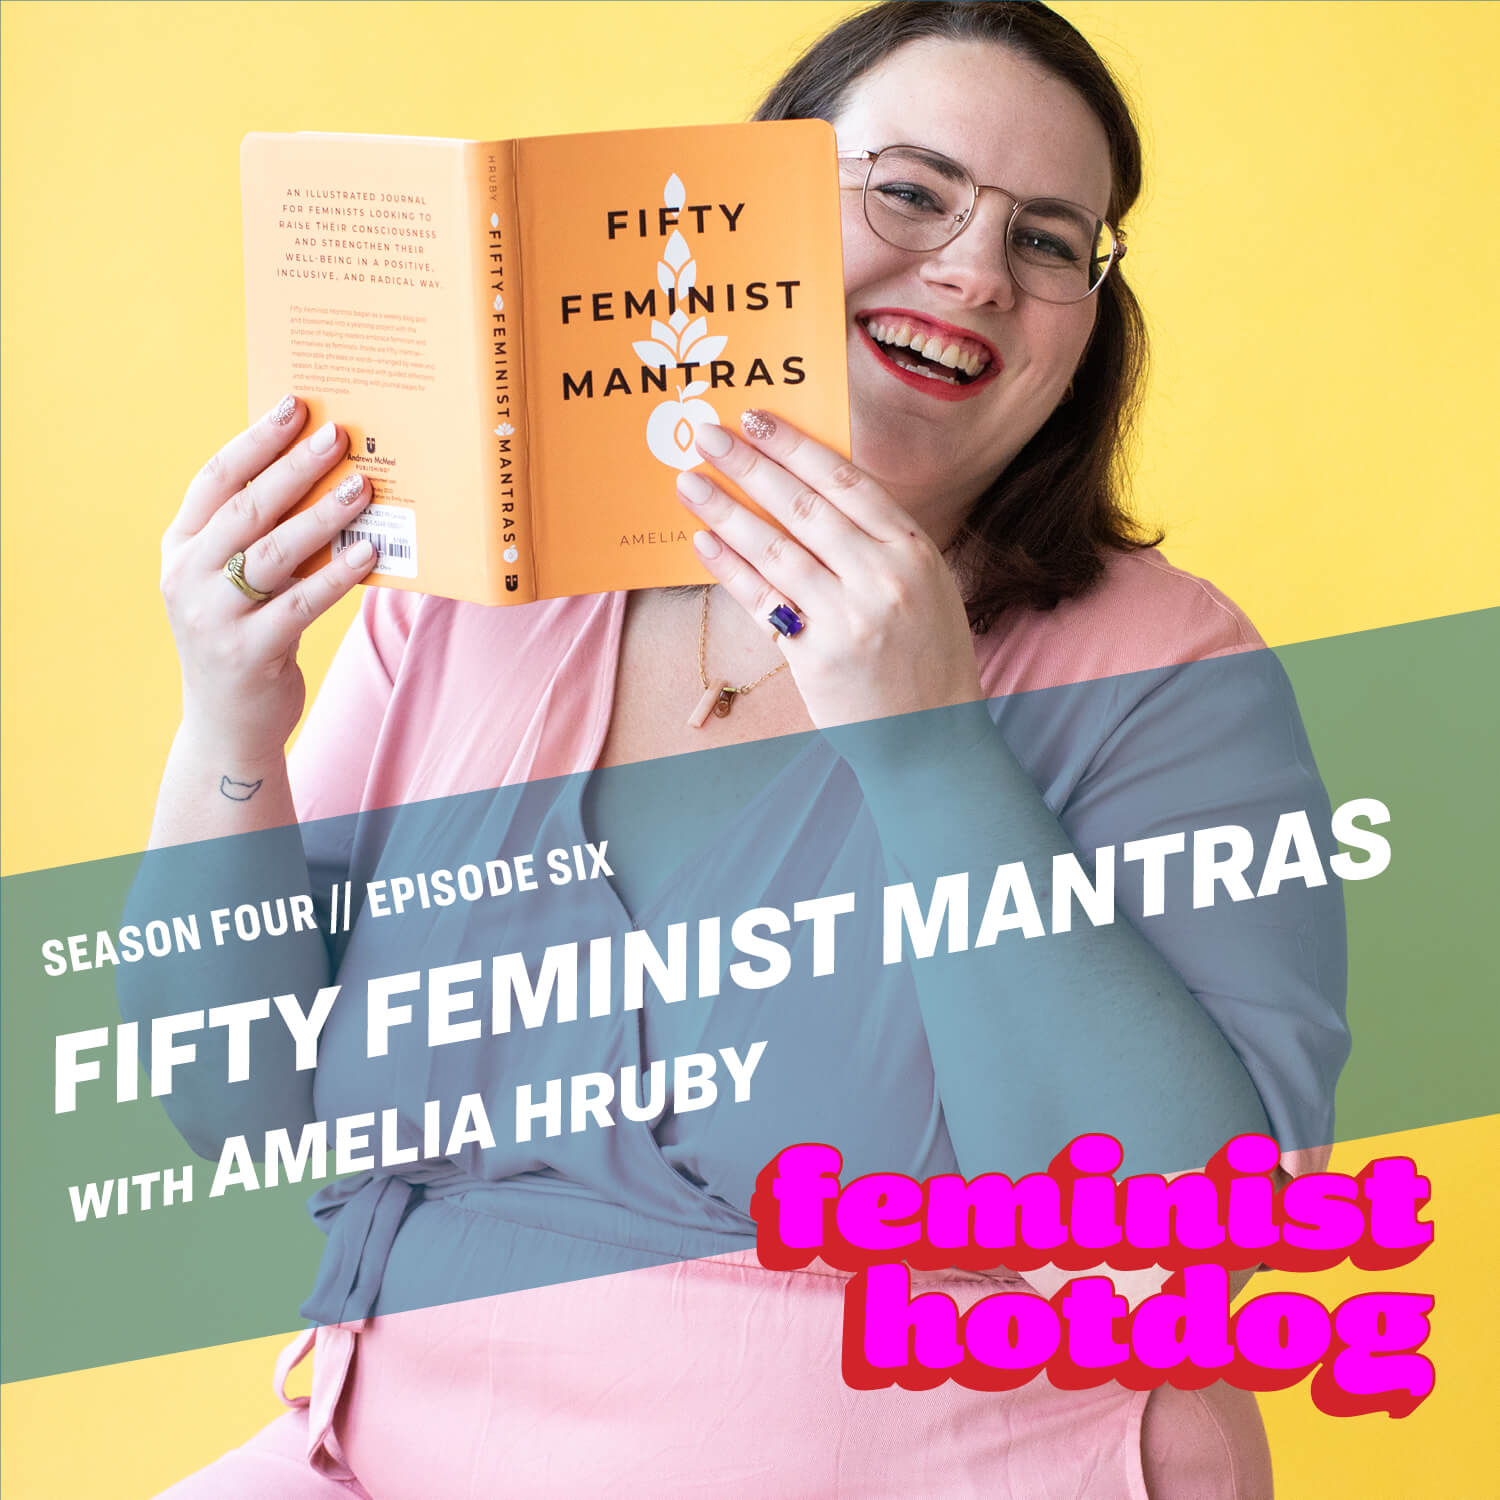 FH S4E6: Fifty Feminist Mantras with Amelia Hruby